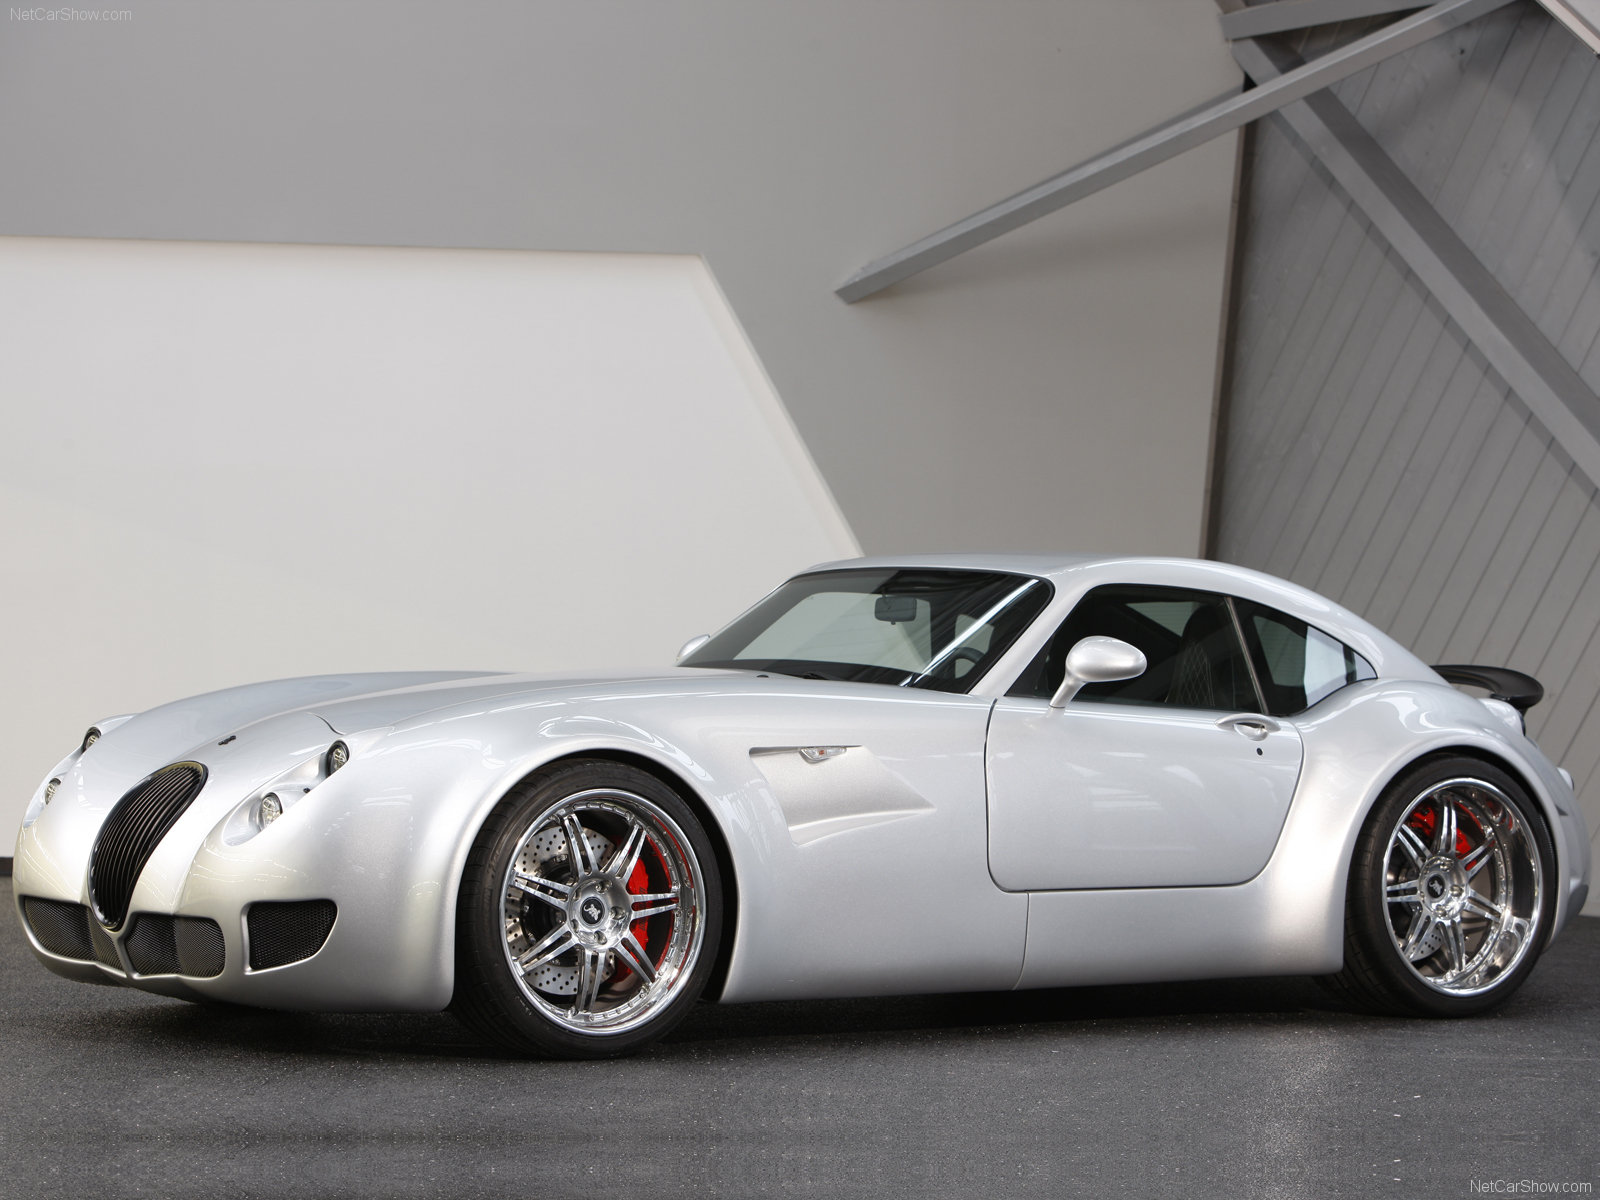 1600x1200 - Wiesmann GT MF5 Wallpapers 26